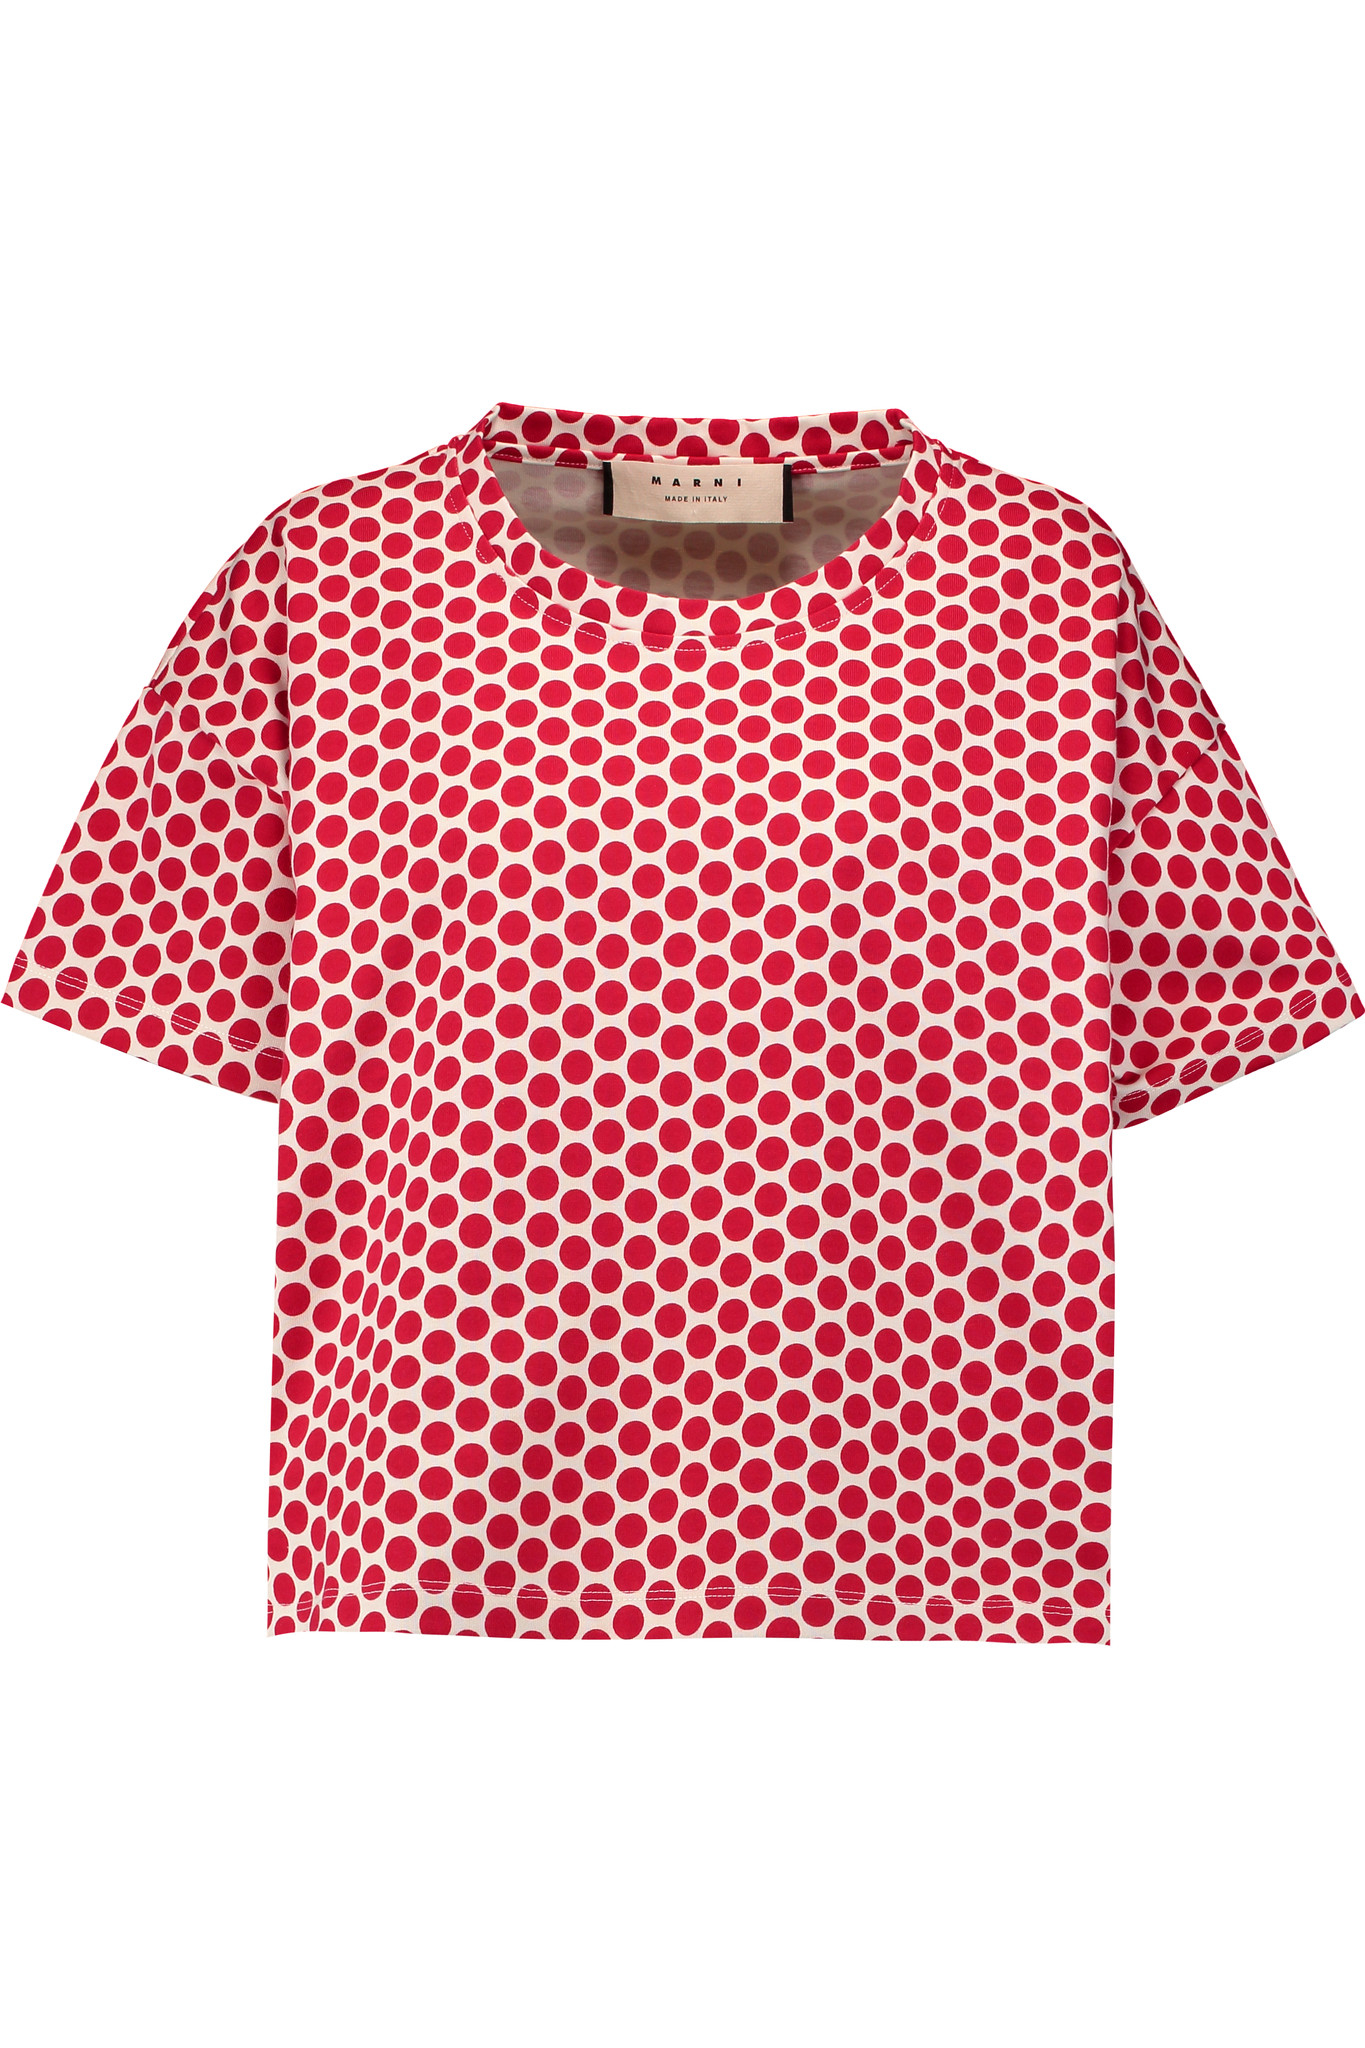 Marni polka dot cotton jersey t shirt in red lyst for White red polka dot shirt